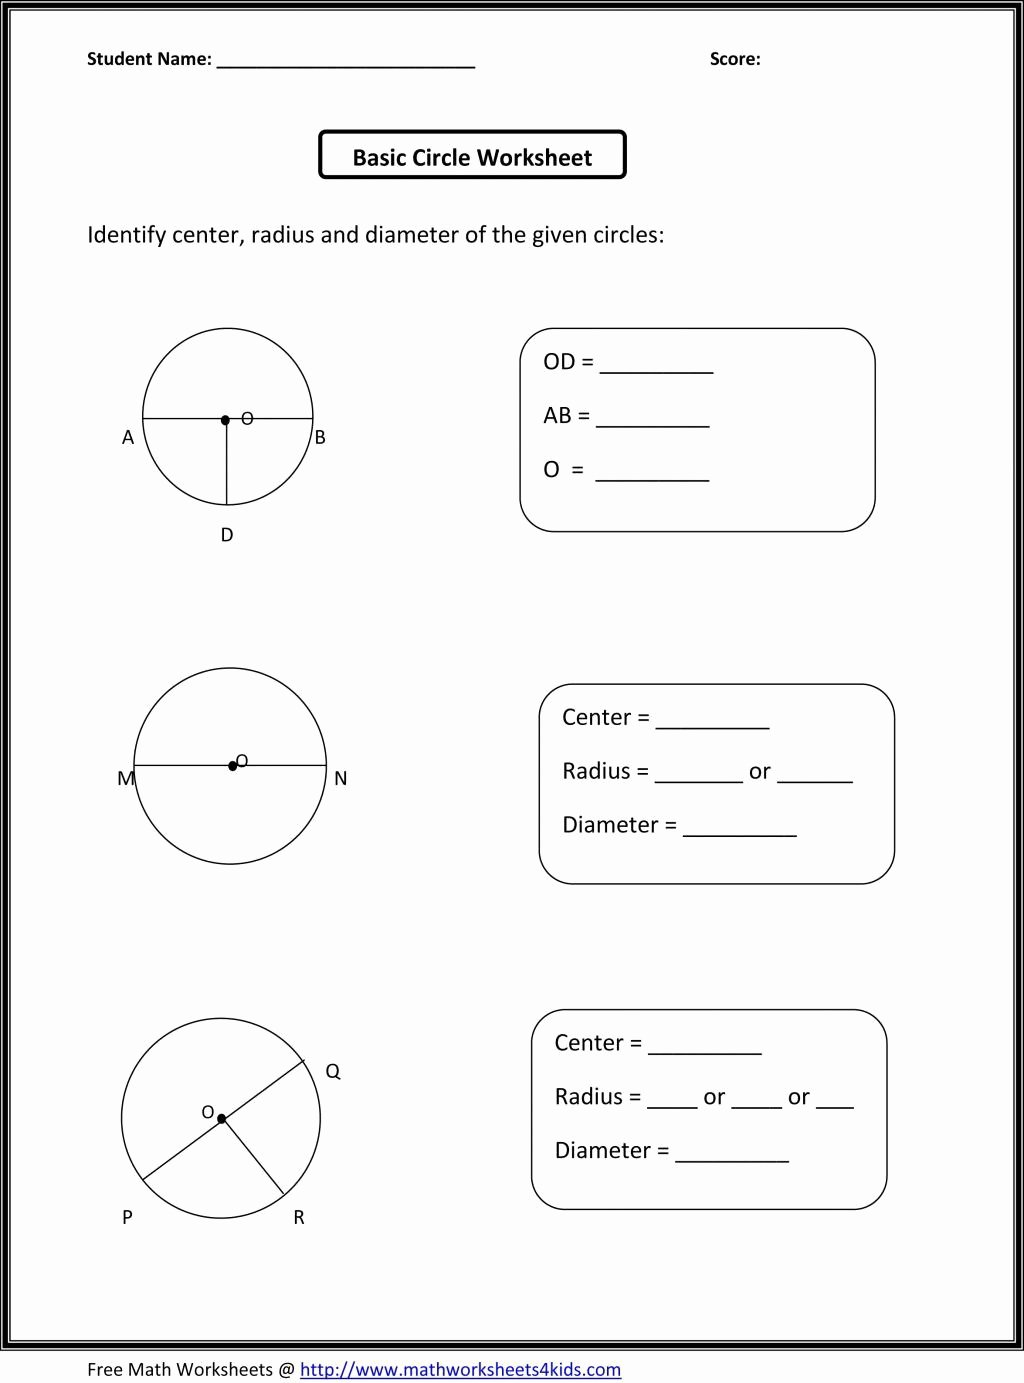 Planet Earth Ocean Deep Worksheet Inspirational Mgic Self Employed Worksheet